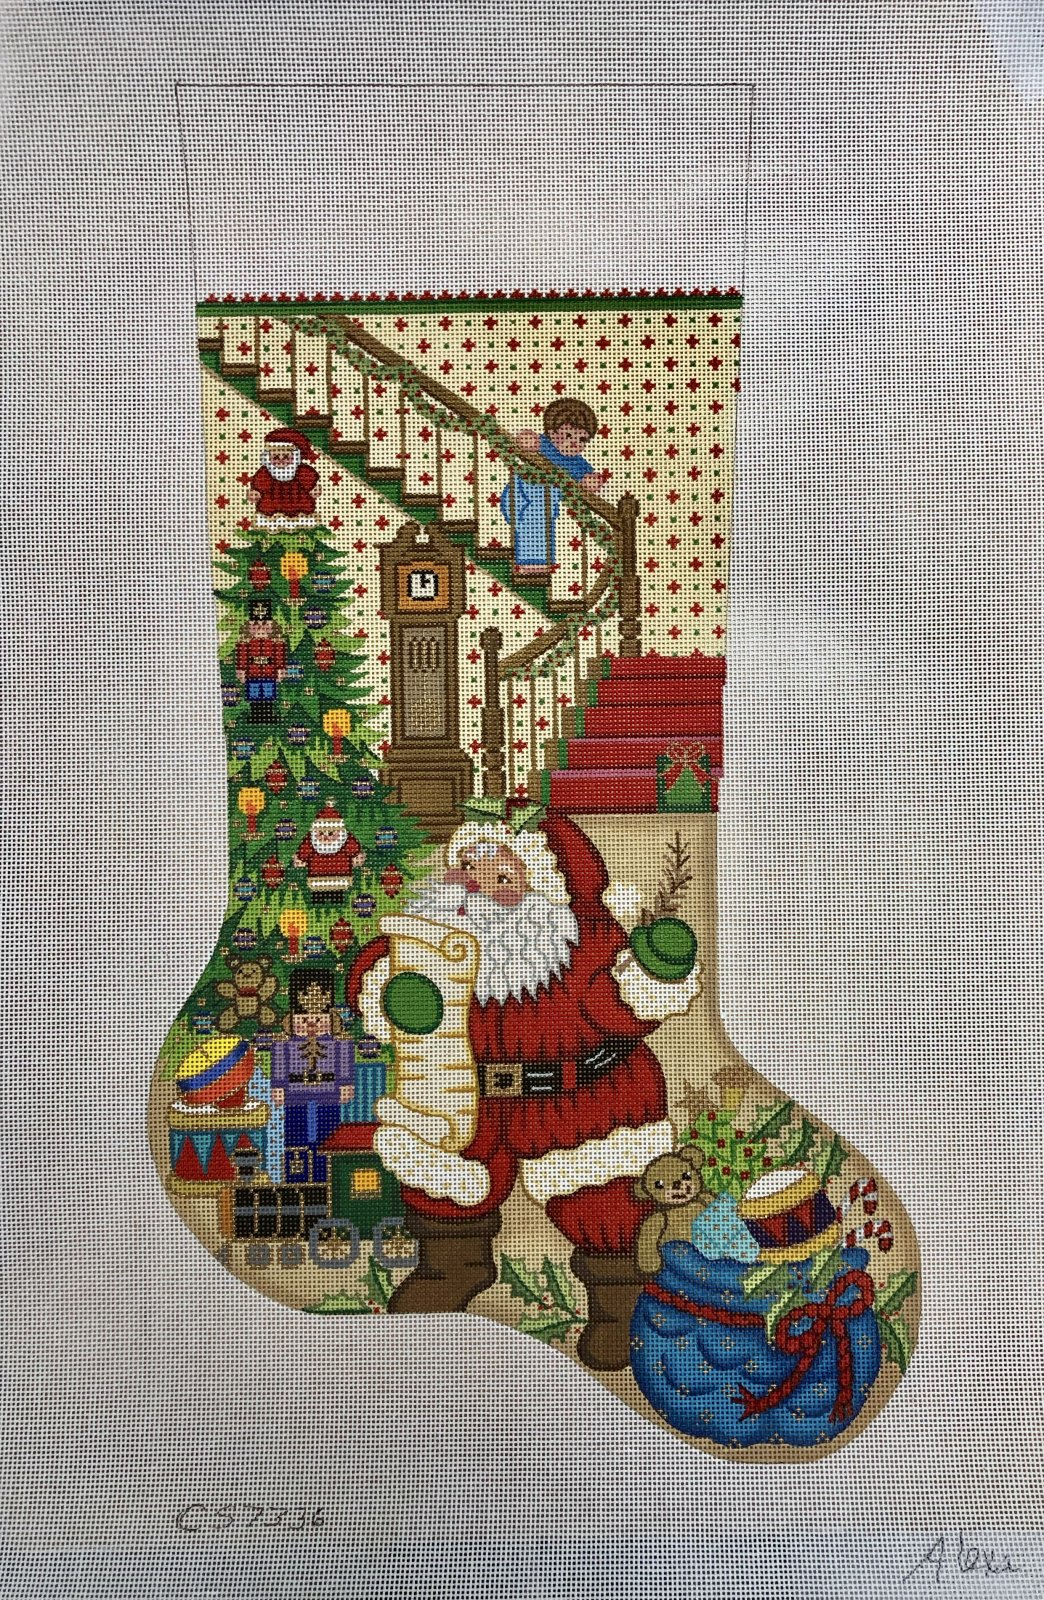 santa's list w boy on stairs